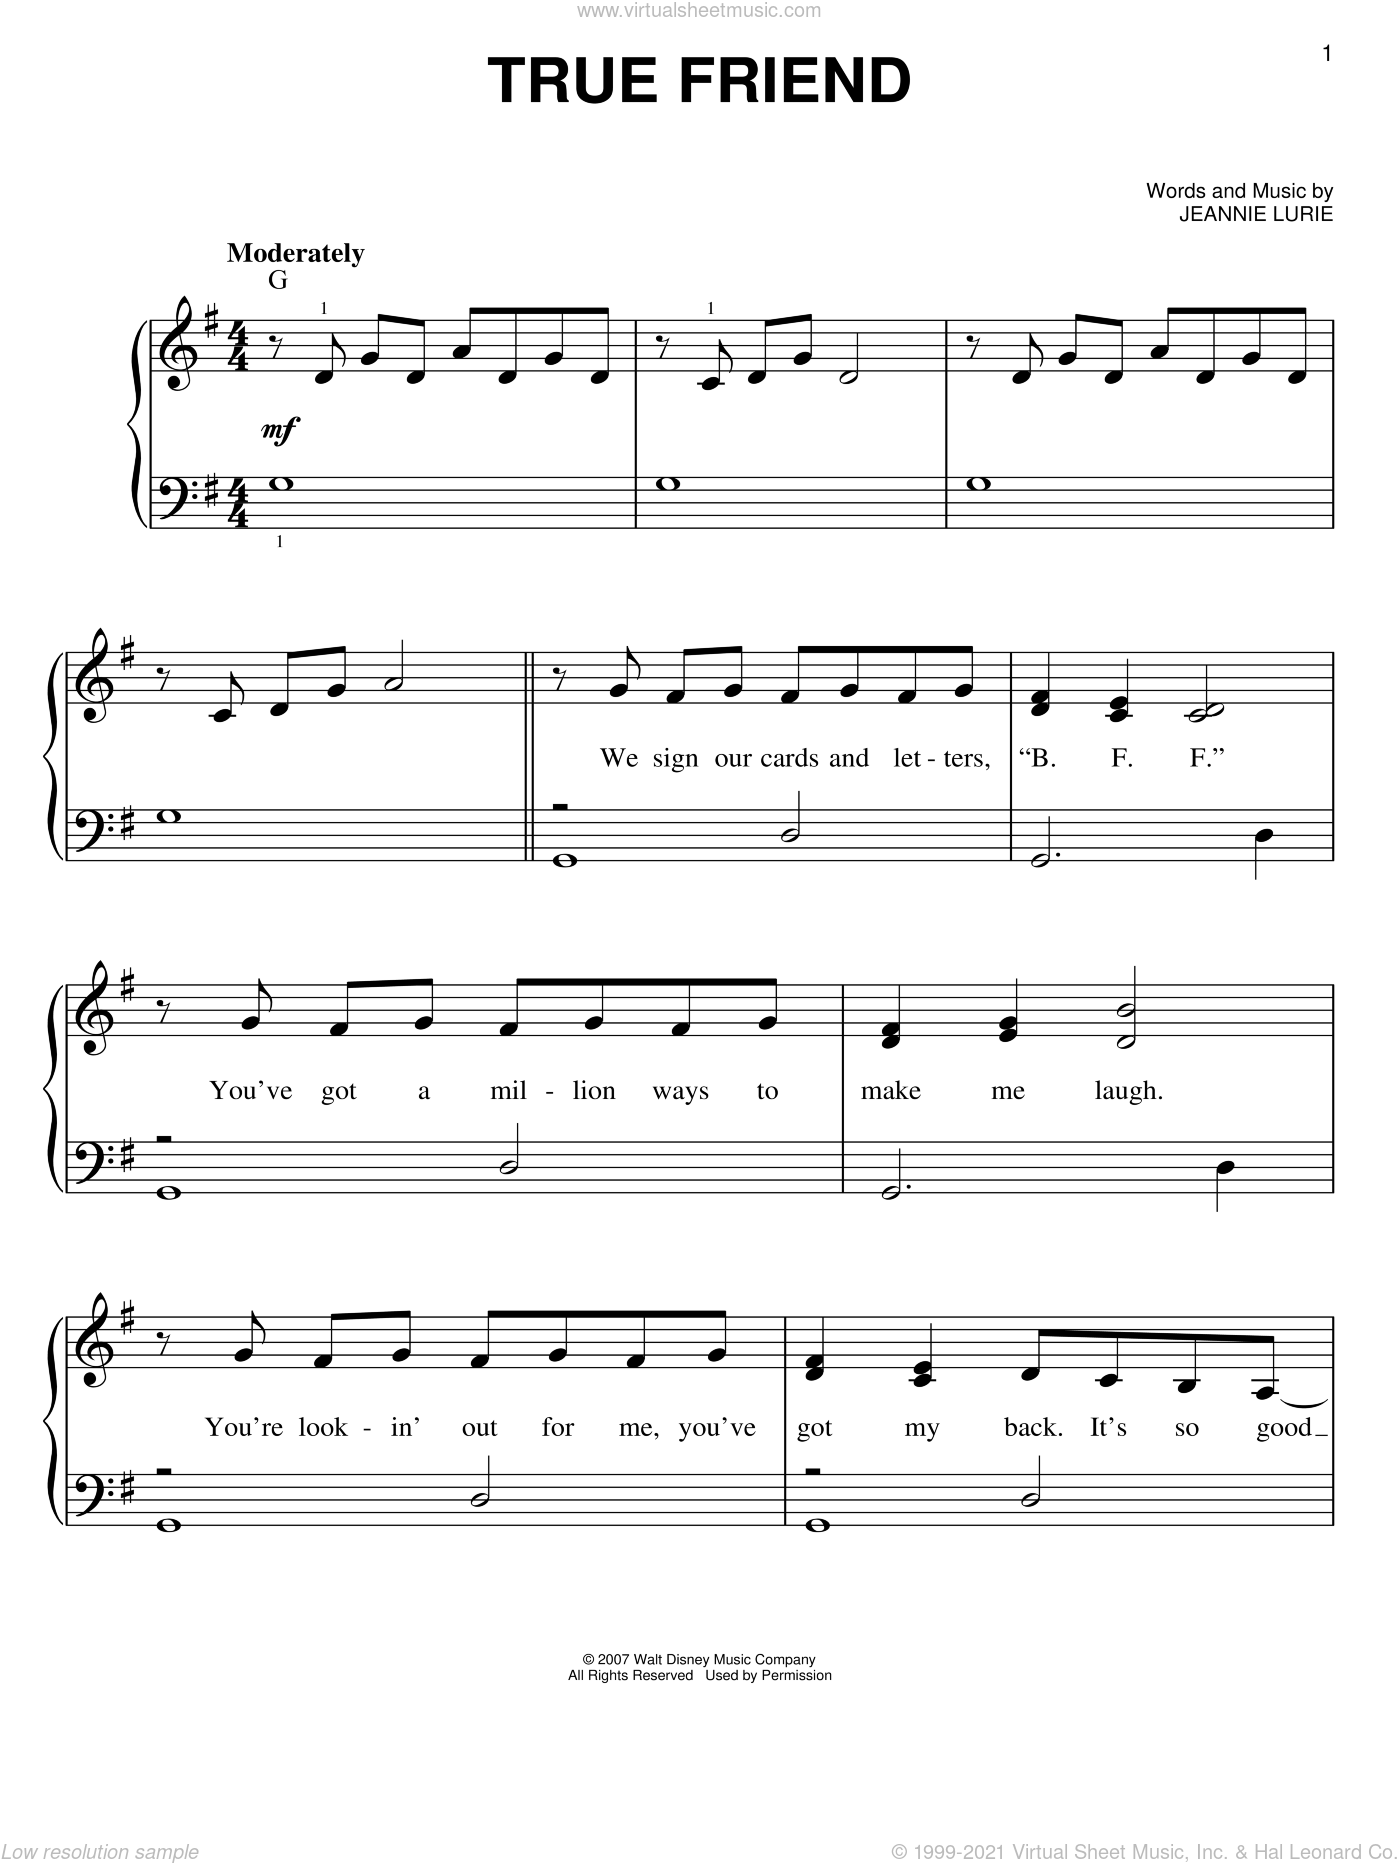 True Friend sheet music for piano solo by Hannah Montana, Miley Cyrus and Jeannie Lurie, easy skill level